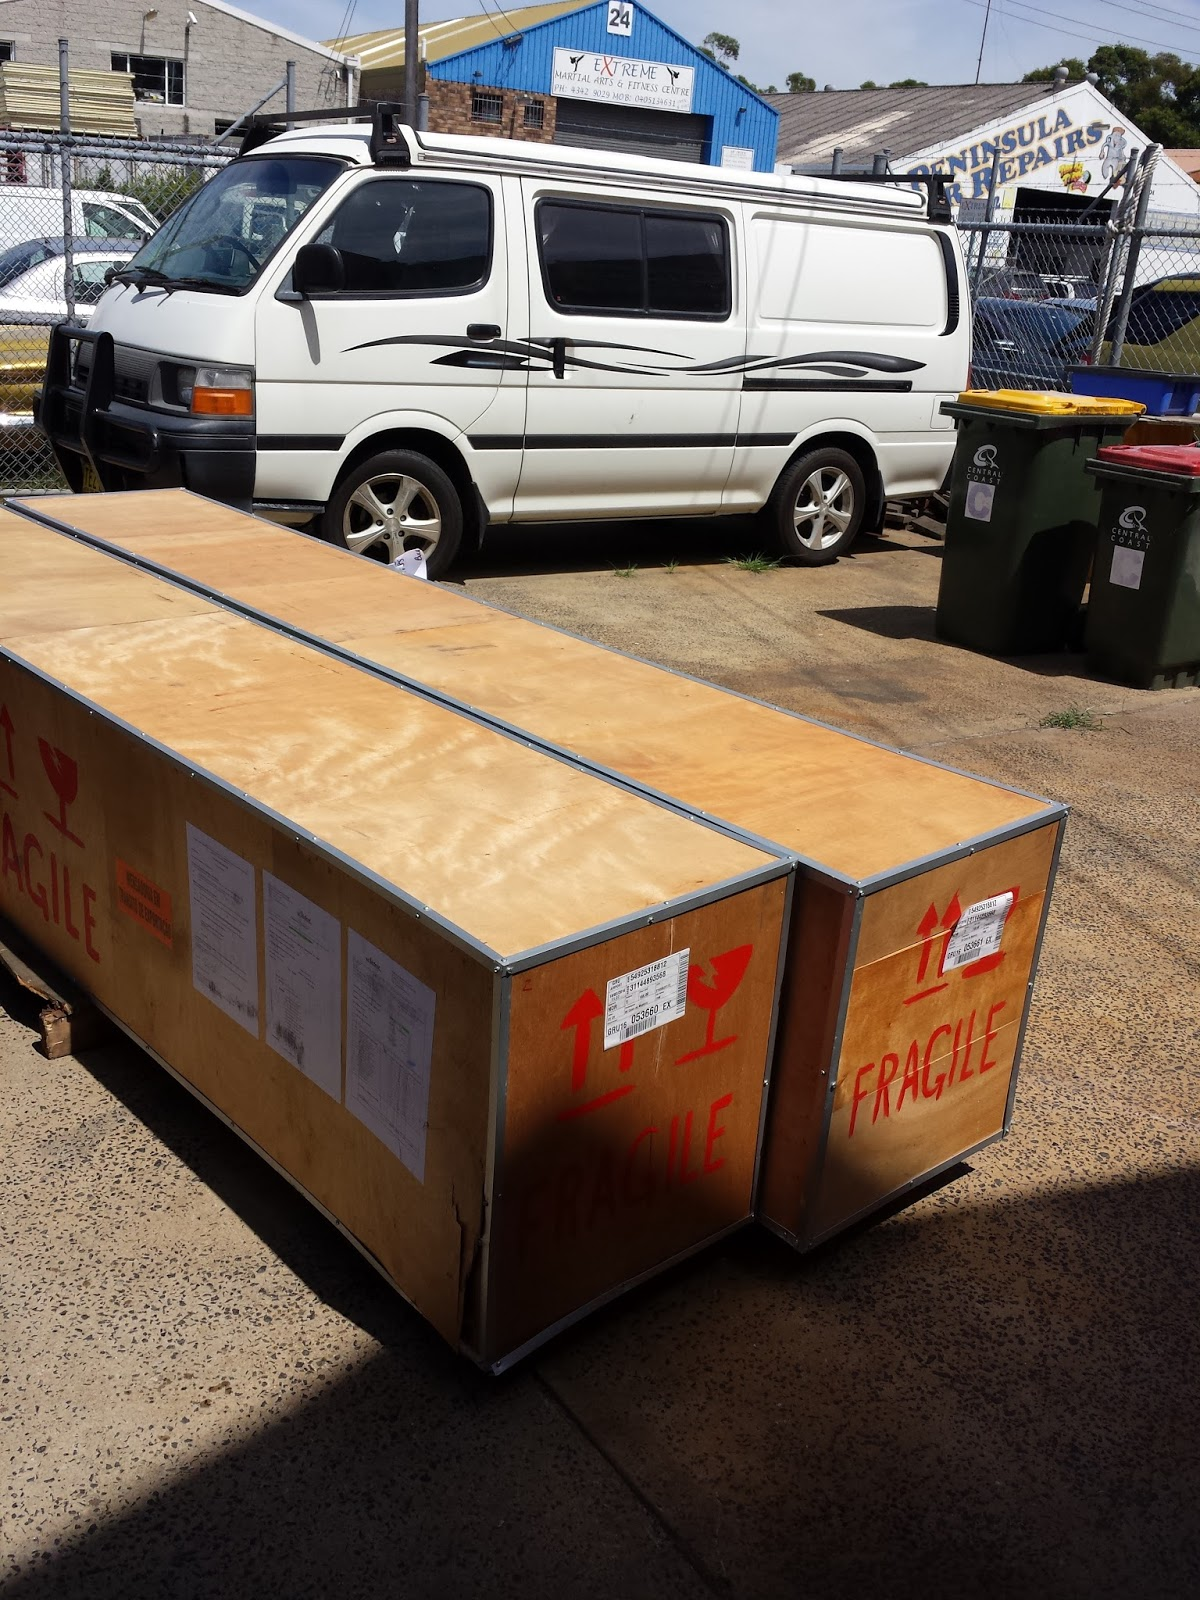 01-03-2016-australia-siebert-surfboards-02